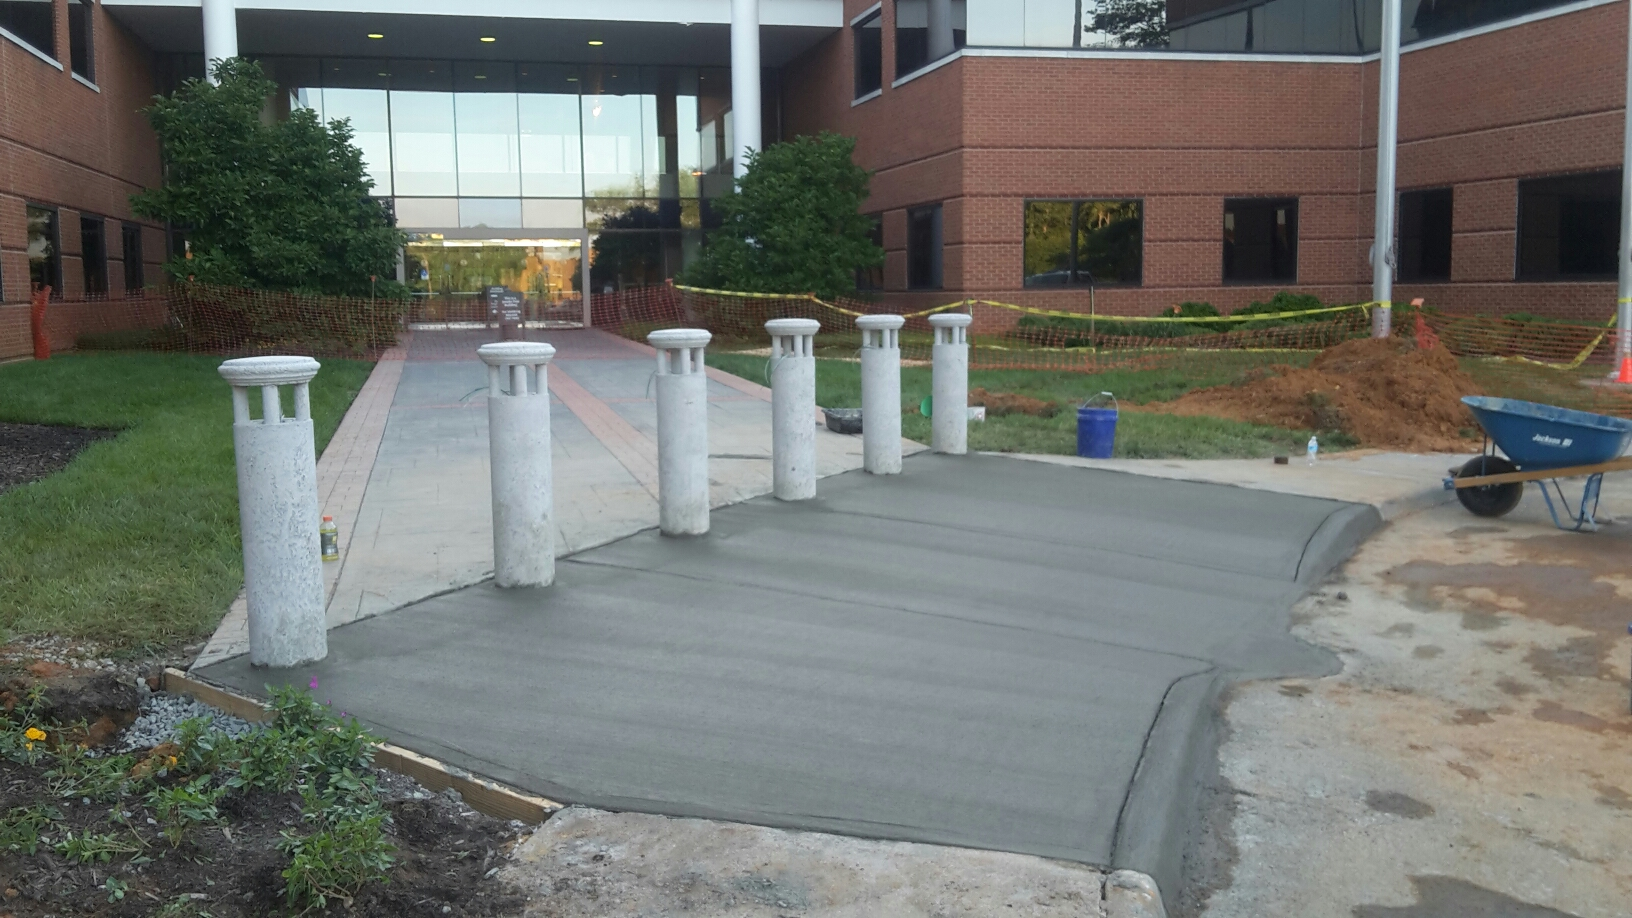 Bollards Installed, Concrete Poured